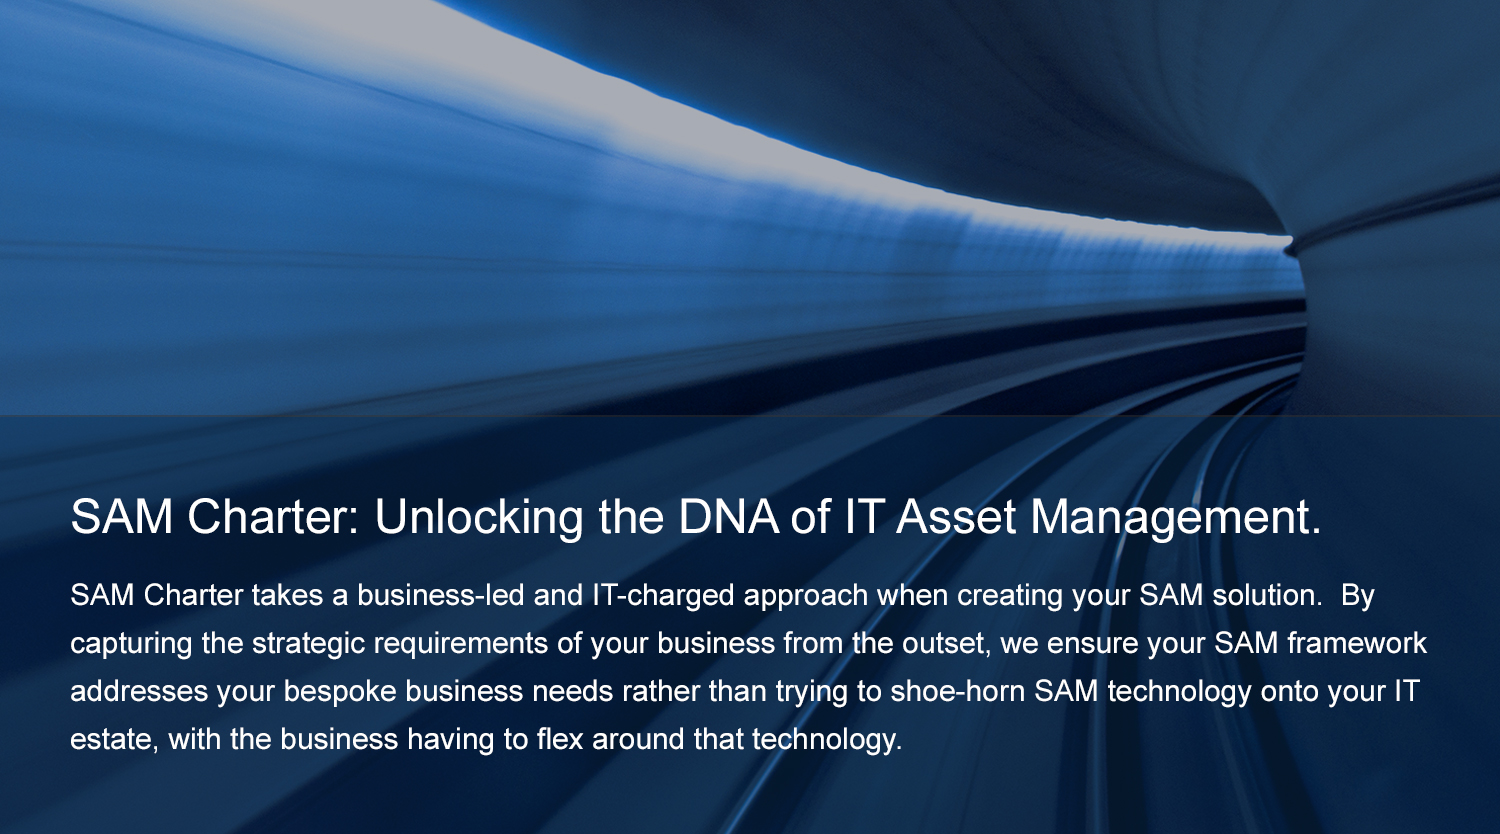 SAM Charter: Unlocking the DNA of IT Asset Management.